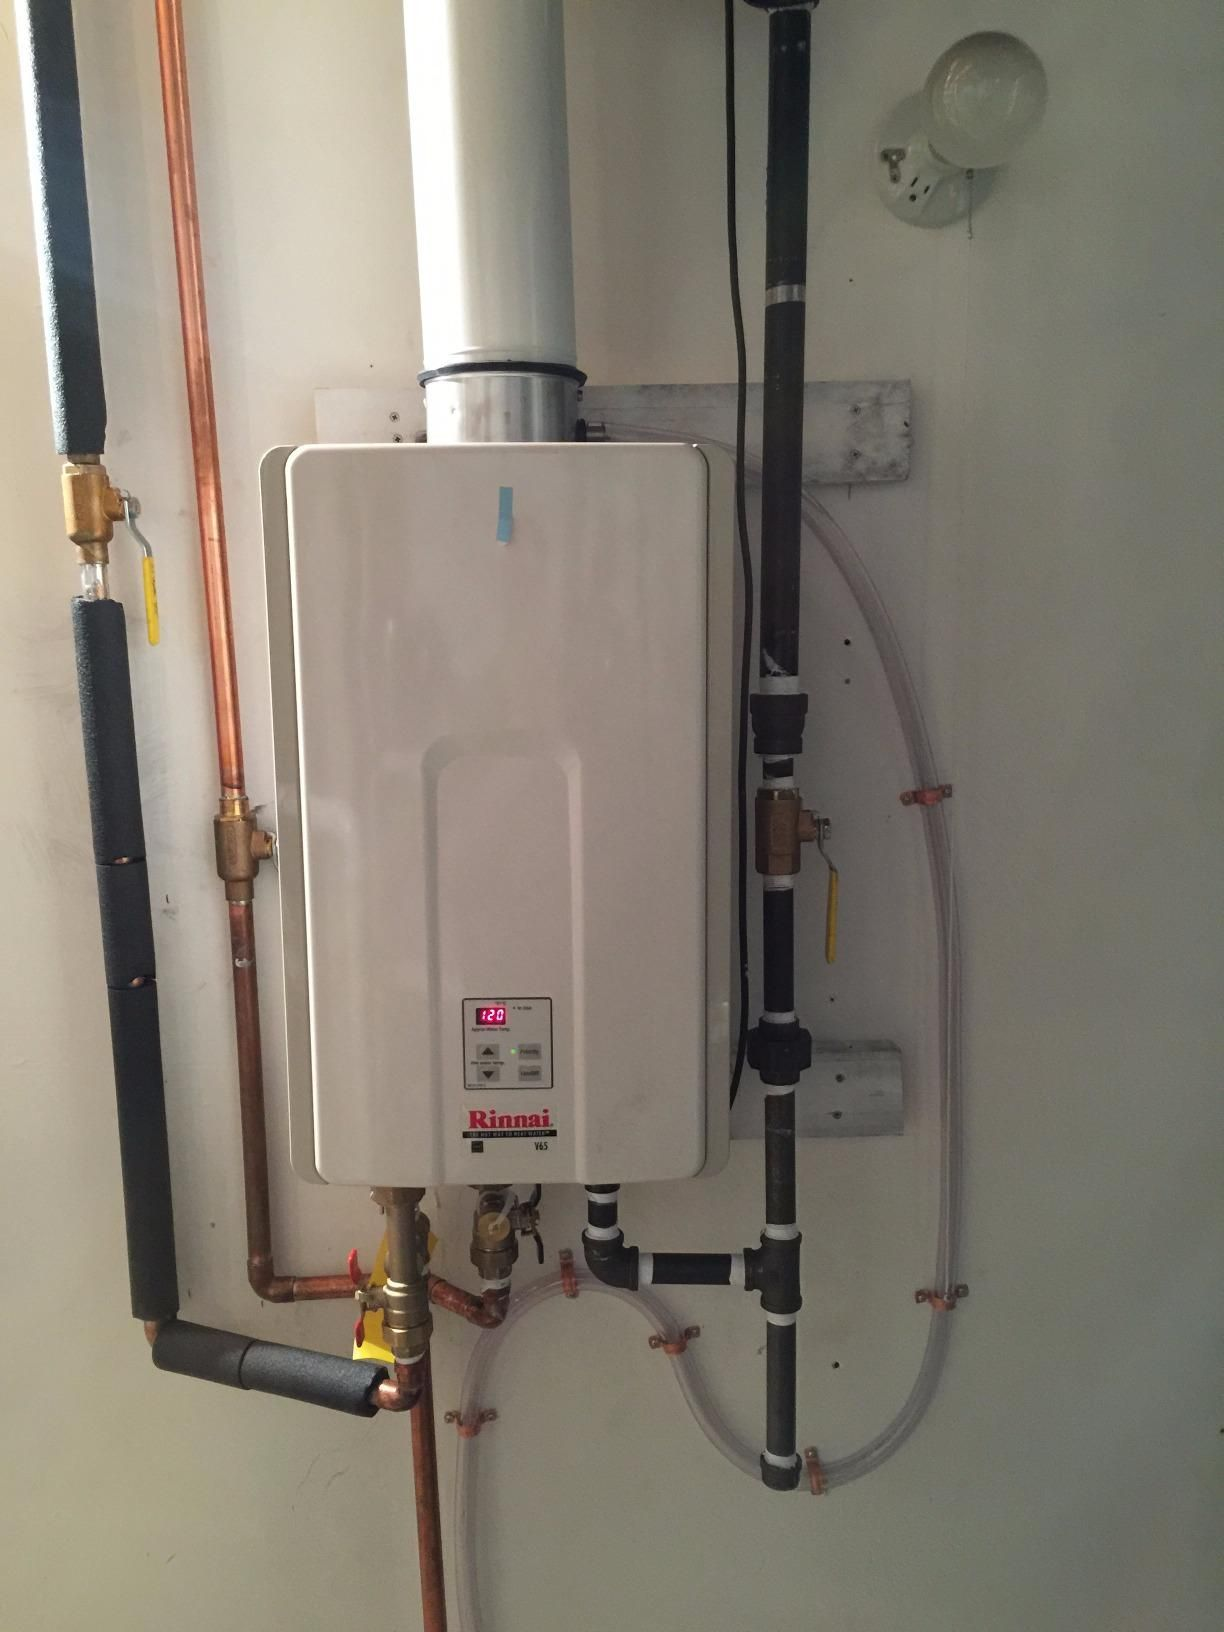 Best Tankless Water Heater Reviews In 2020 Tankless Water Heater Natural Gas Water Heater Gas Water Heater